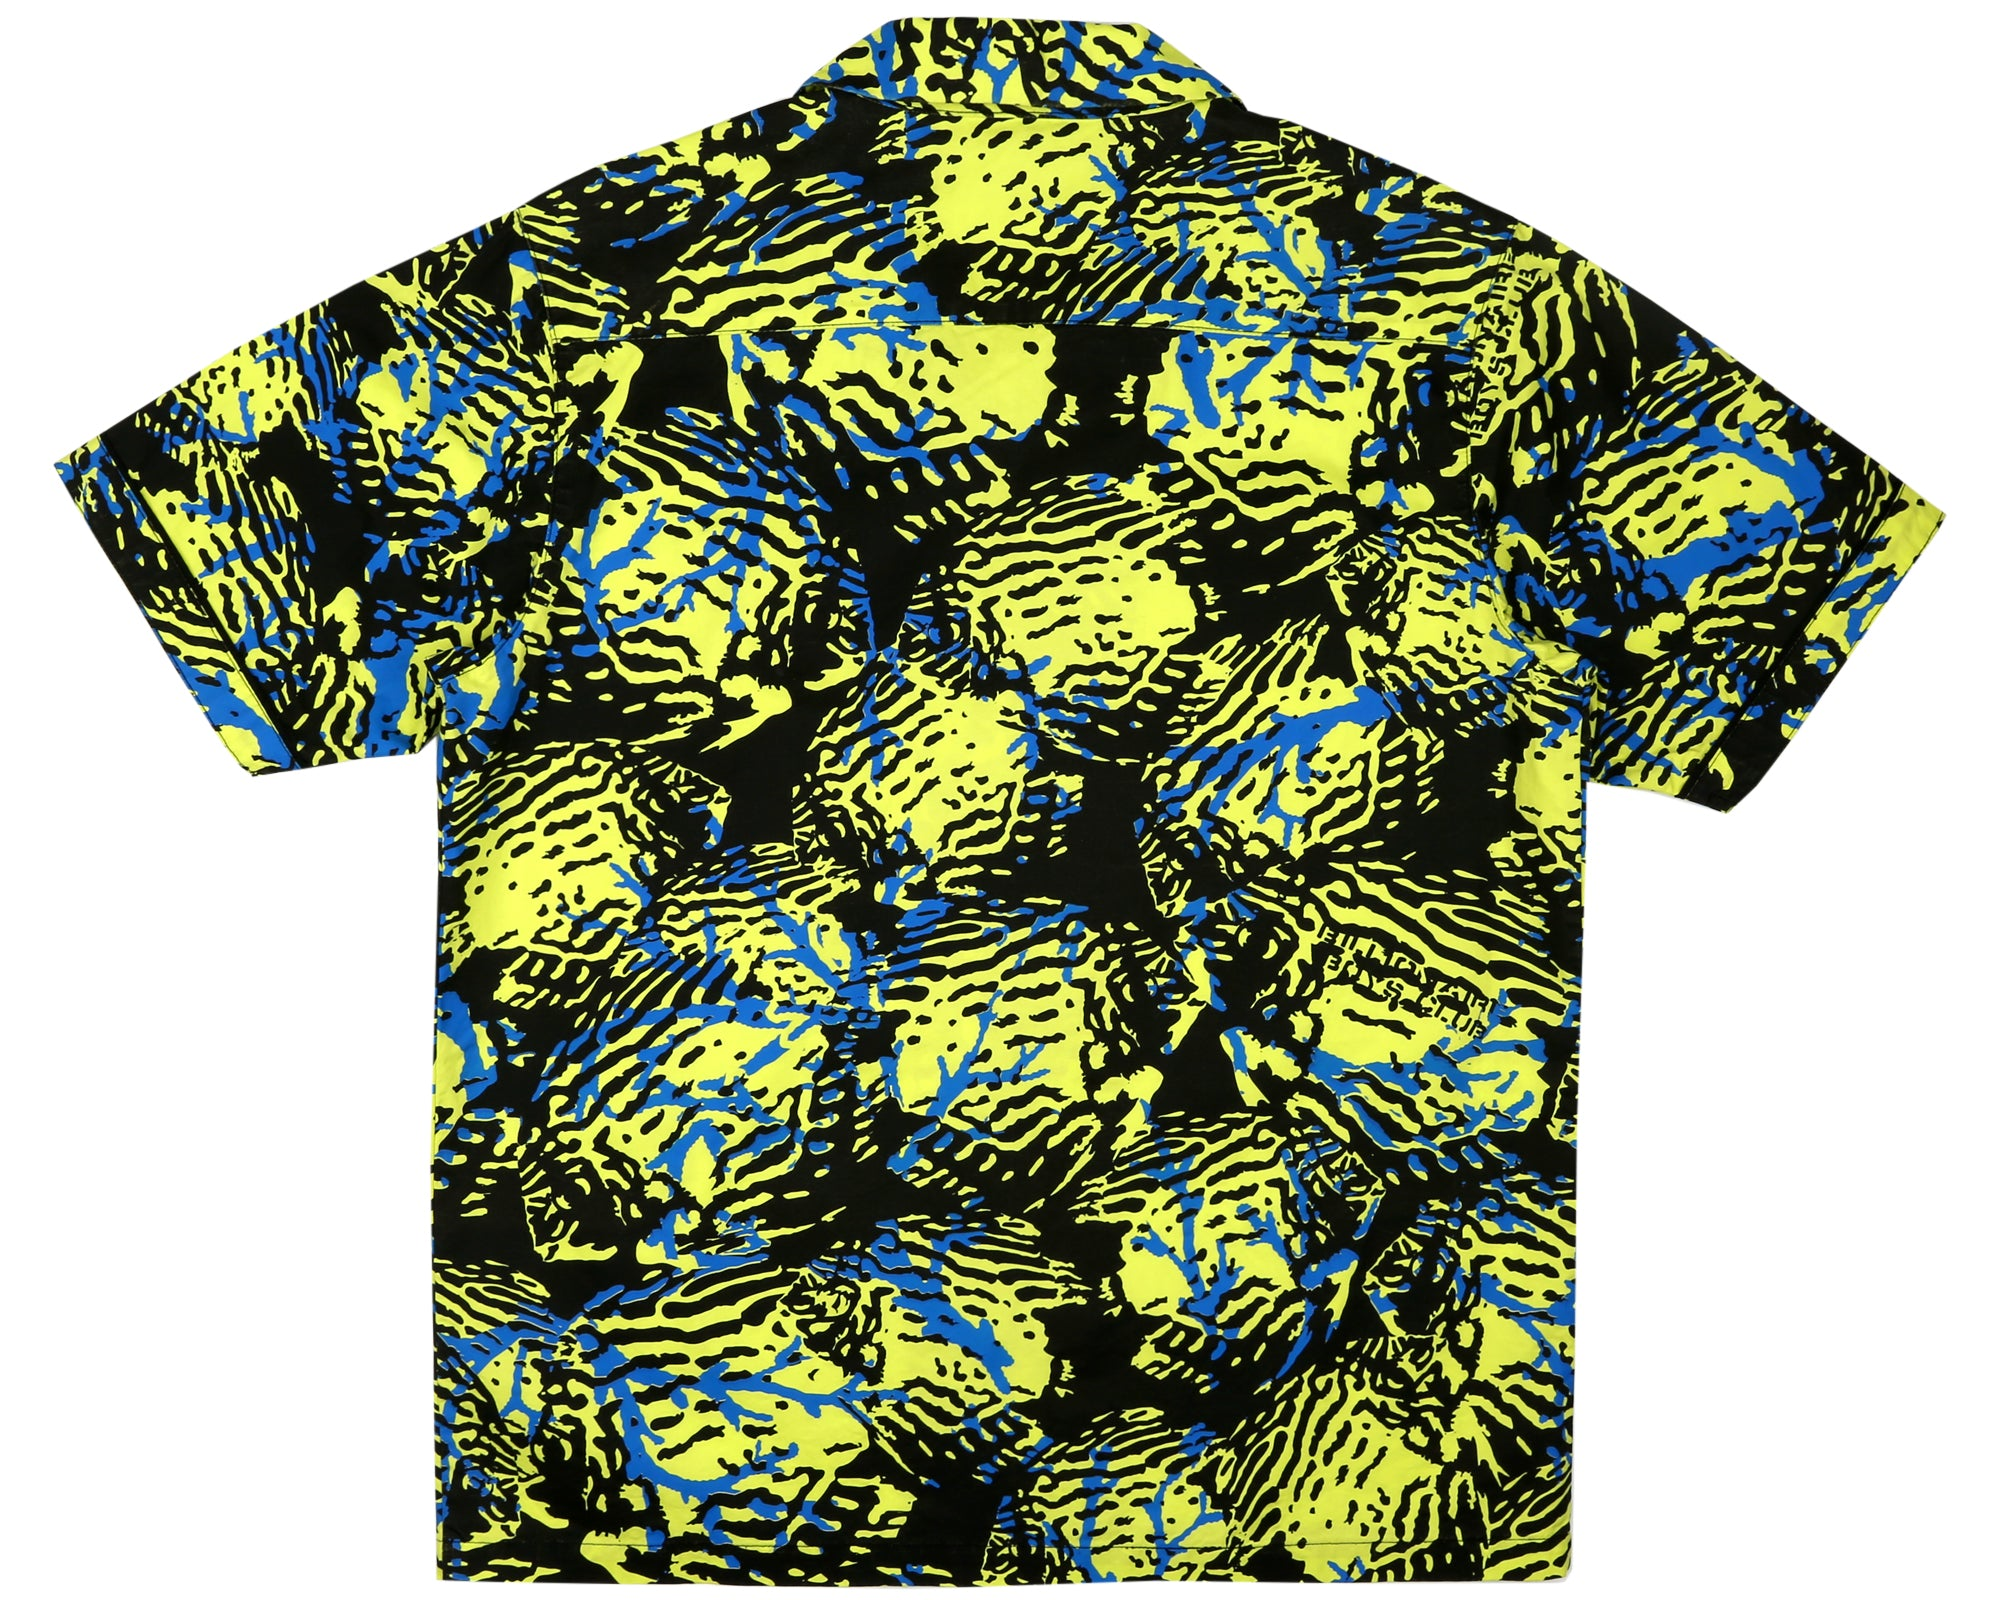 FISH CAMO S/S SHIRT - YELLOW